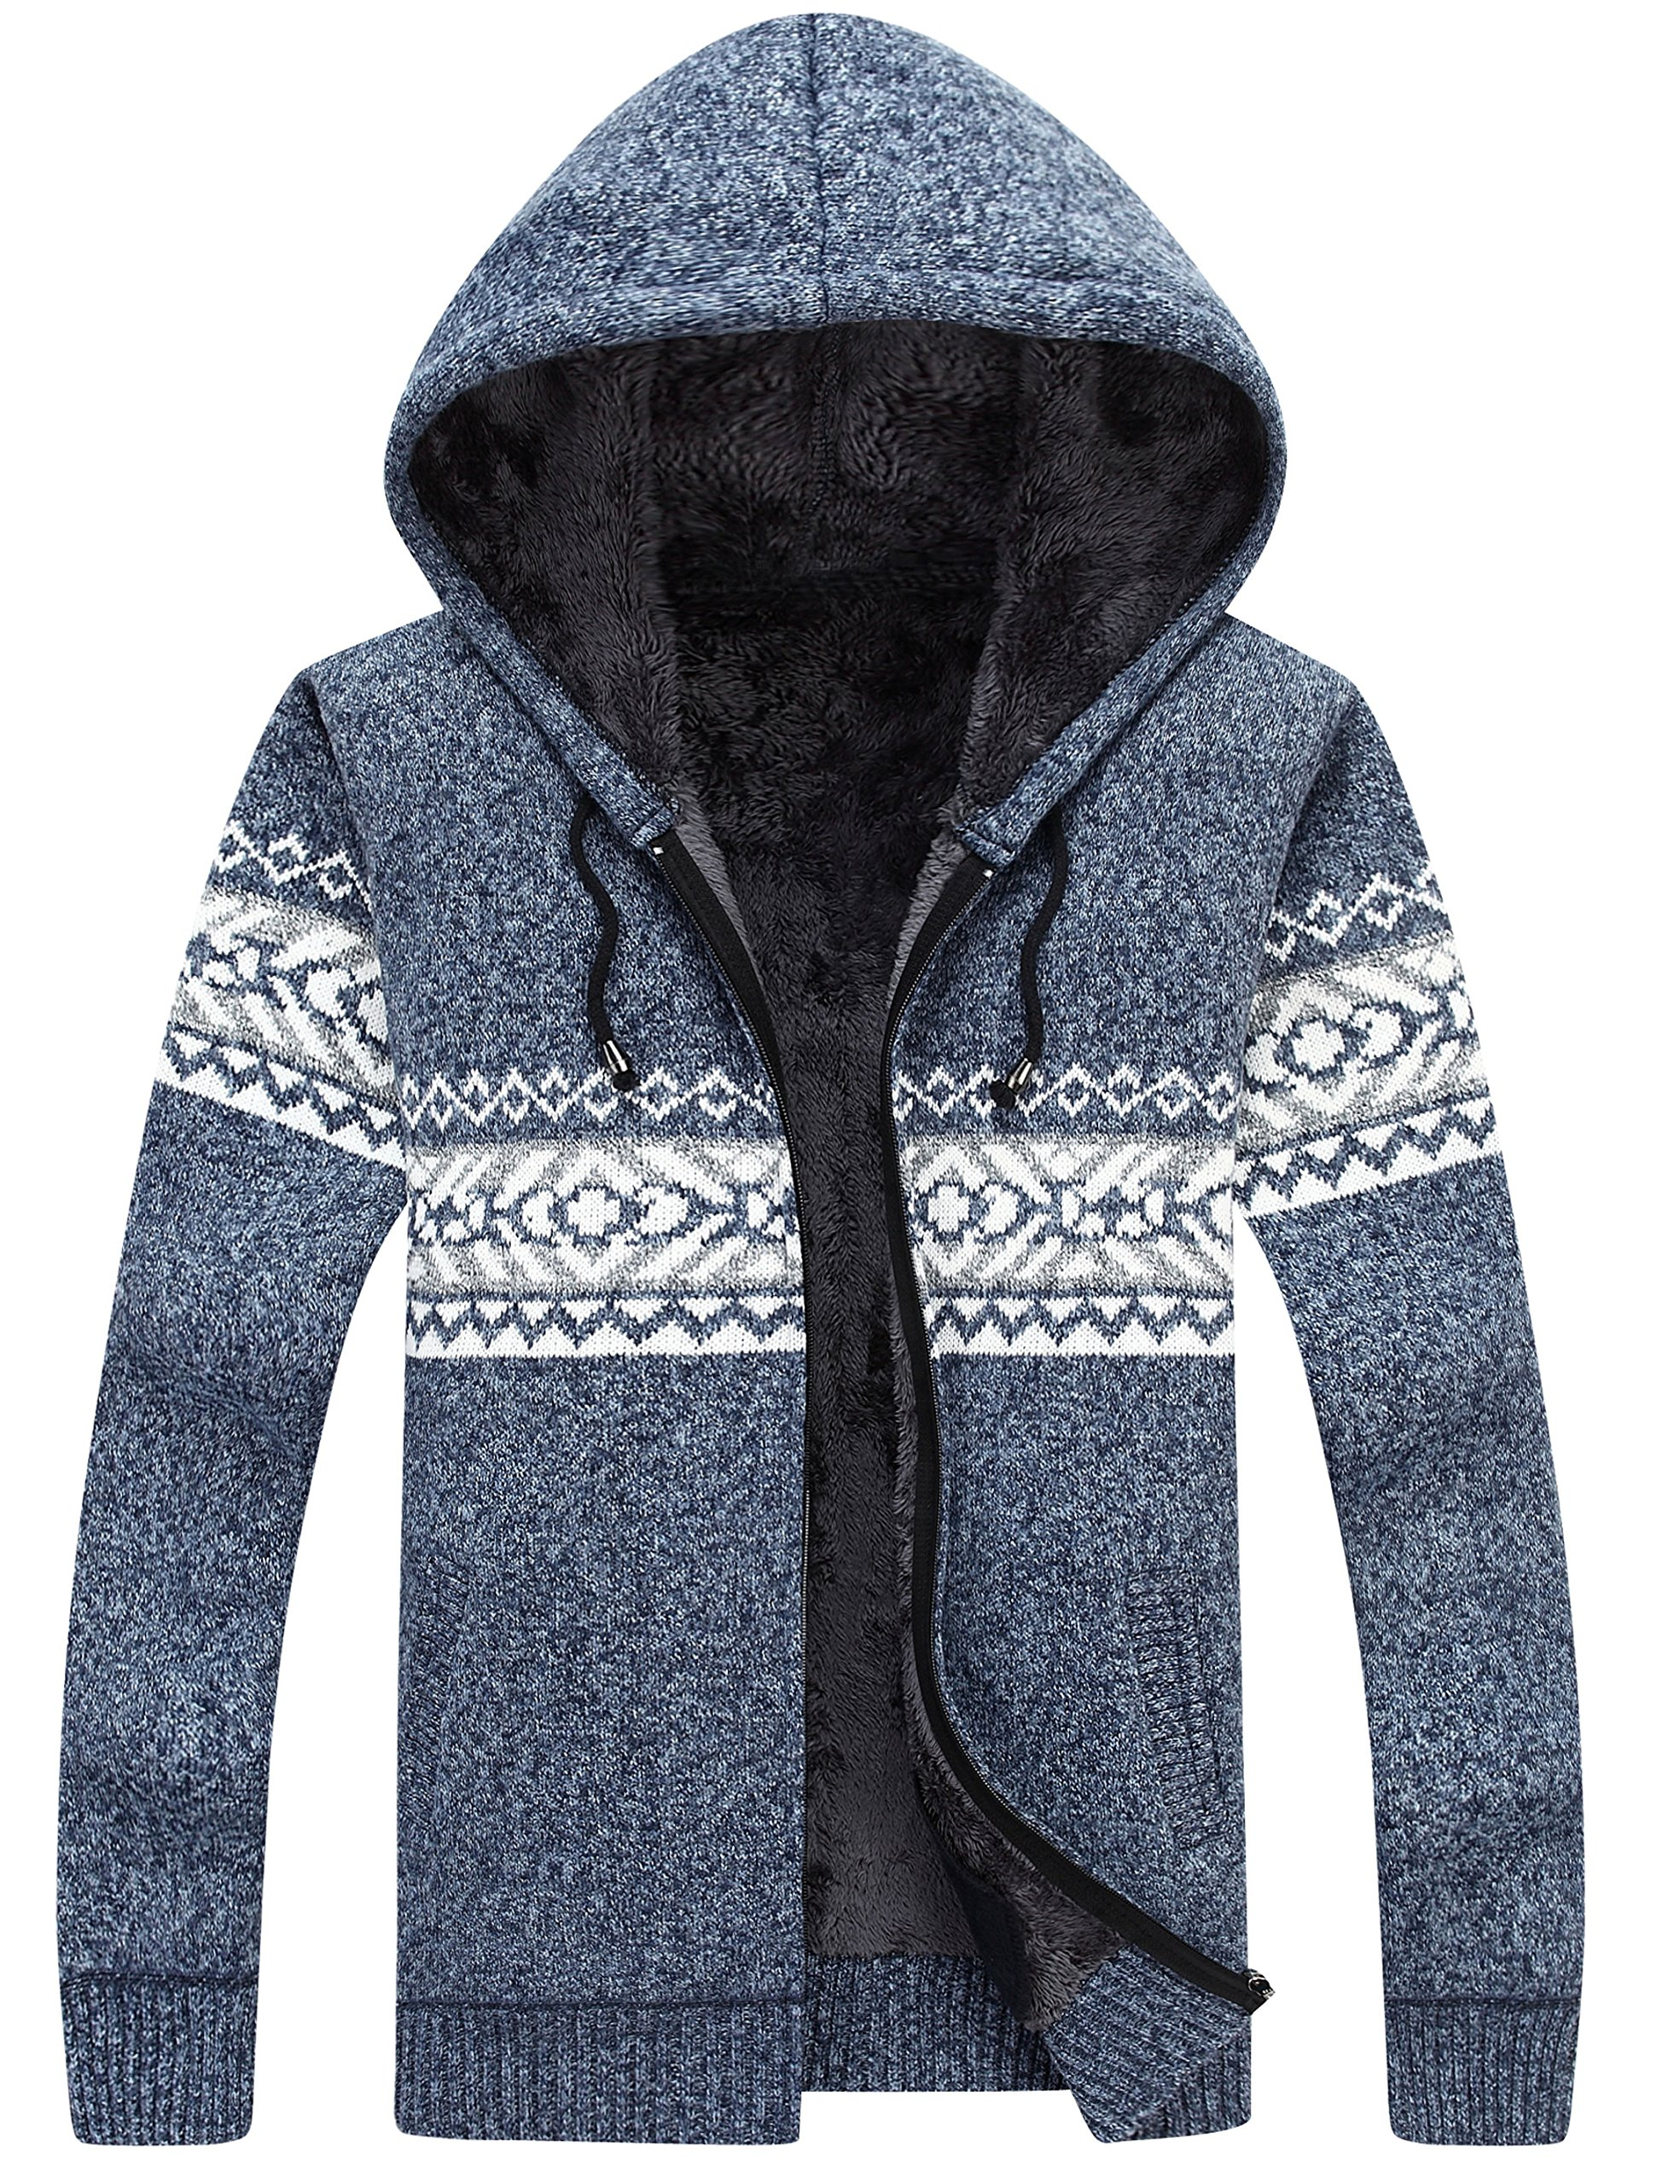 Lentta Men's Casual Slim Fit Full Zip up Sherpa Lined Hooded Cardigan Sweaters (Large, Blue)